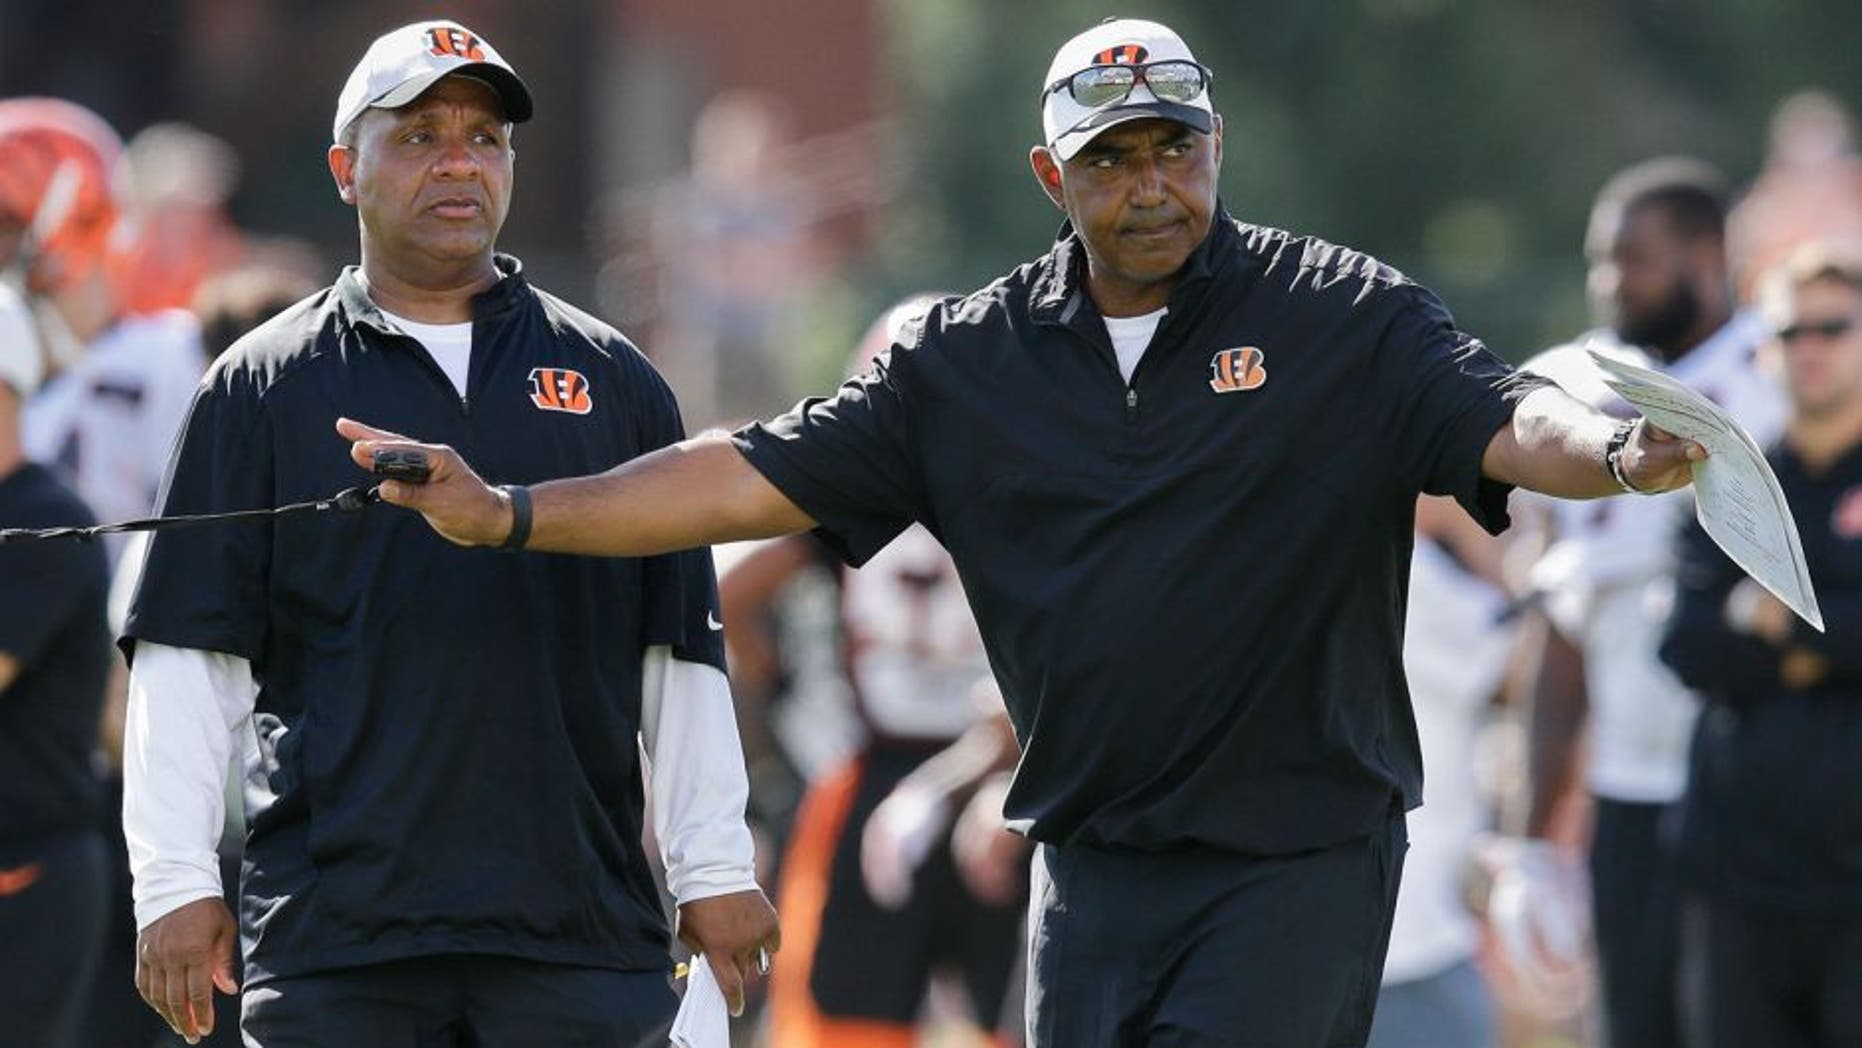 Cincinnati Bengals coach Marvin Lewis, right, signals to his players alongside offensive coordinator Hue Jackson, left, during a joint NFL football training camp with the New York Giants, Wednesday, Aug. 12, 2015, in Cincinnati. (AP Photo/John Minchillo)